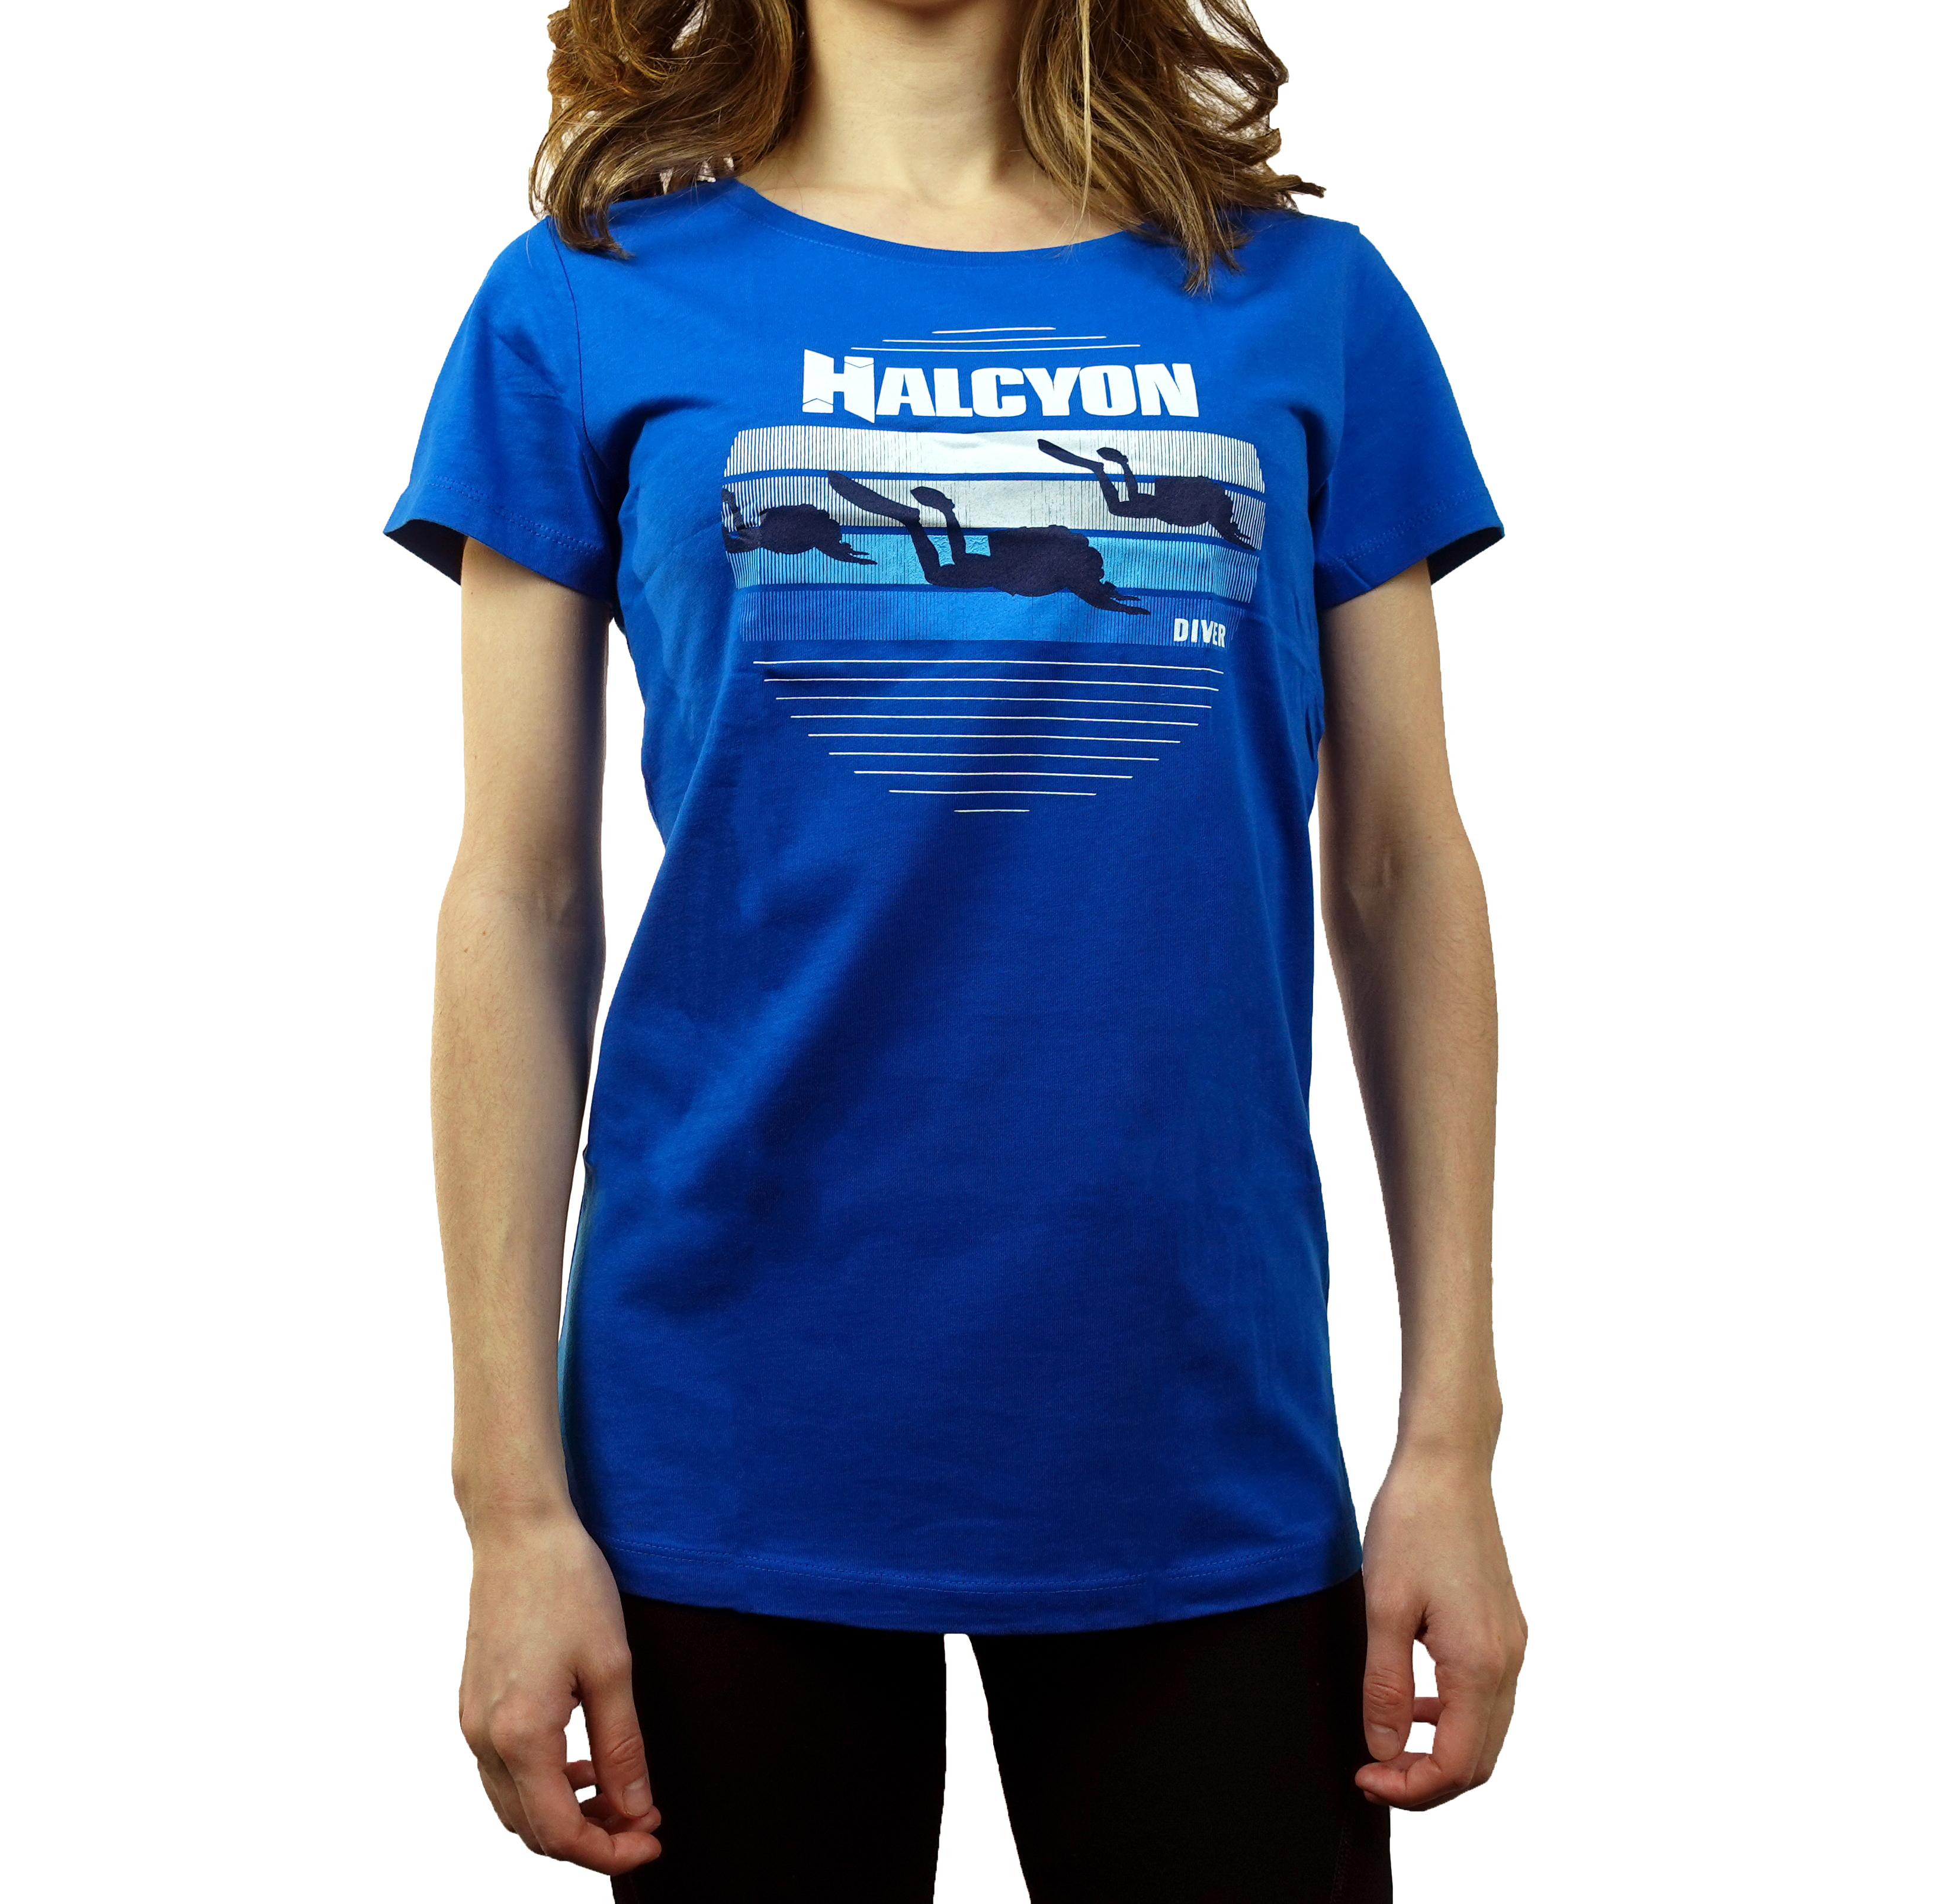 Halcyon Blue Diver T-shirt, Women's